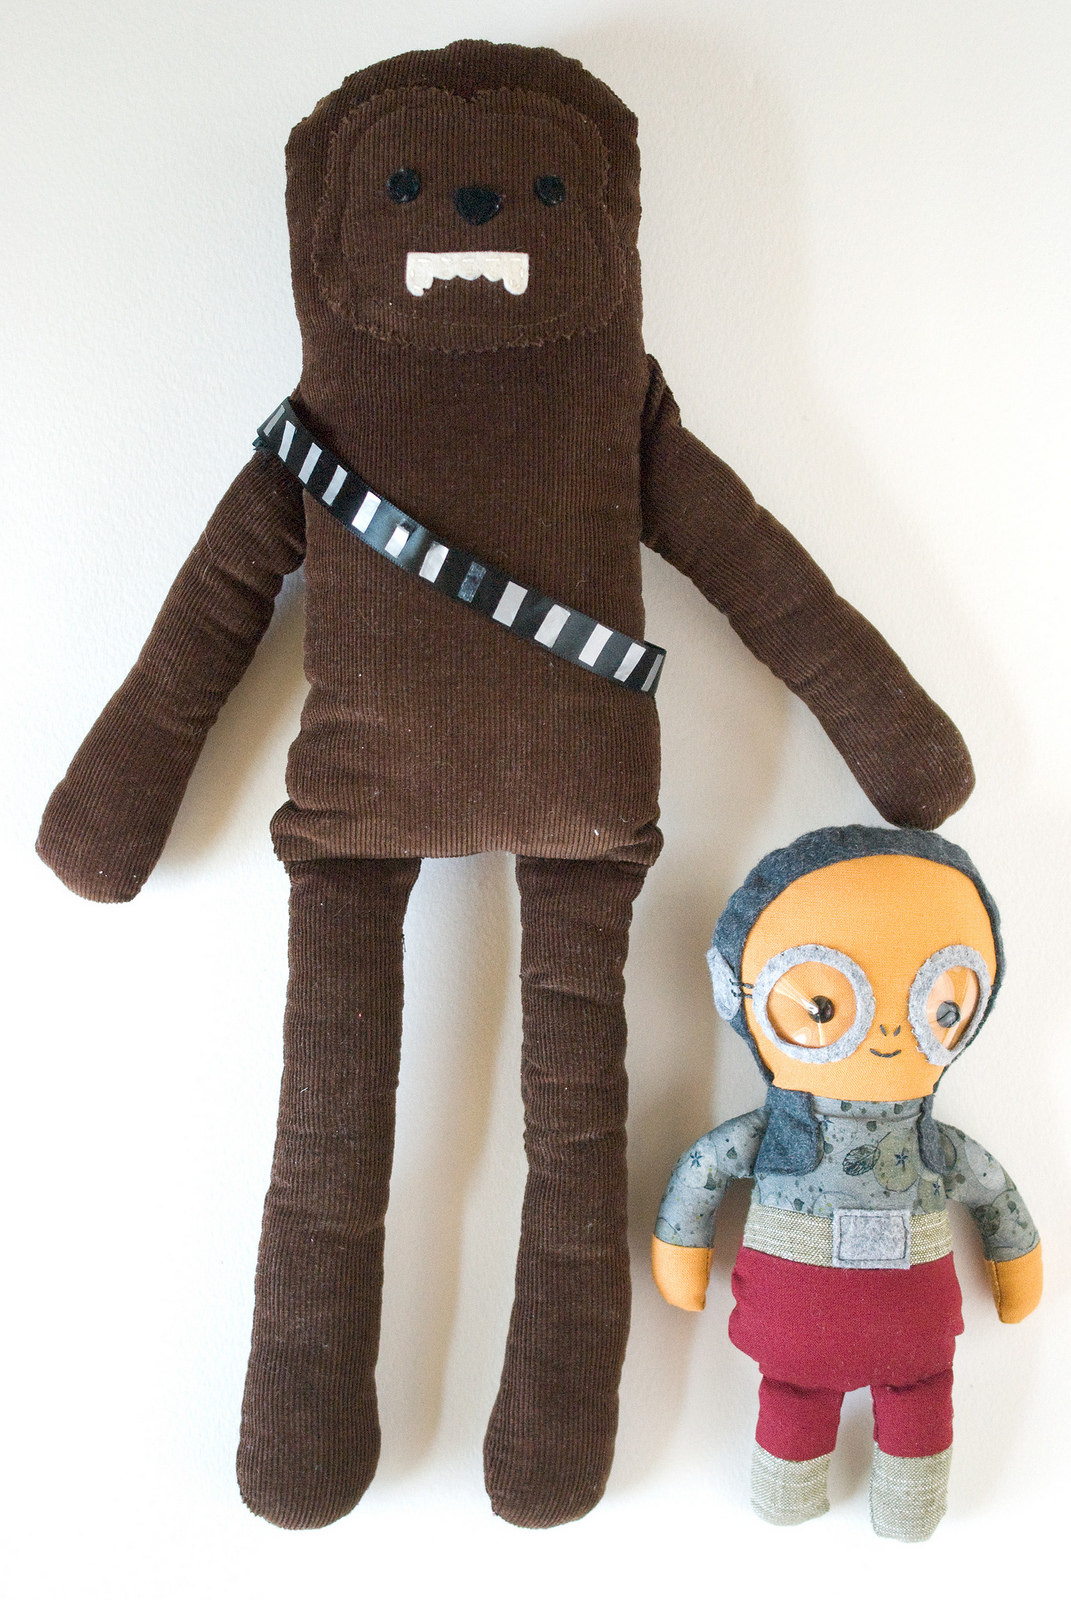 27+ Adorable Free Sewing Patterns for Stuffies, Plushies, Stuffed Animals and Other Felt and Fabric Toys- Maz Kanata and Chewbacca Plush from Wild Olive